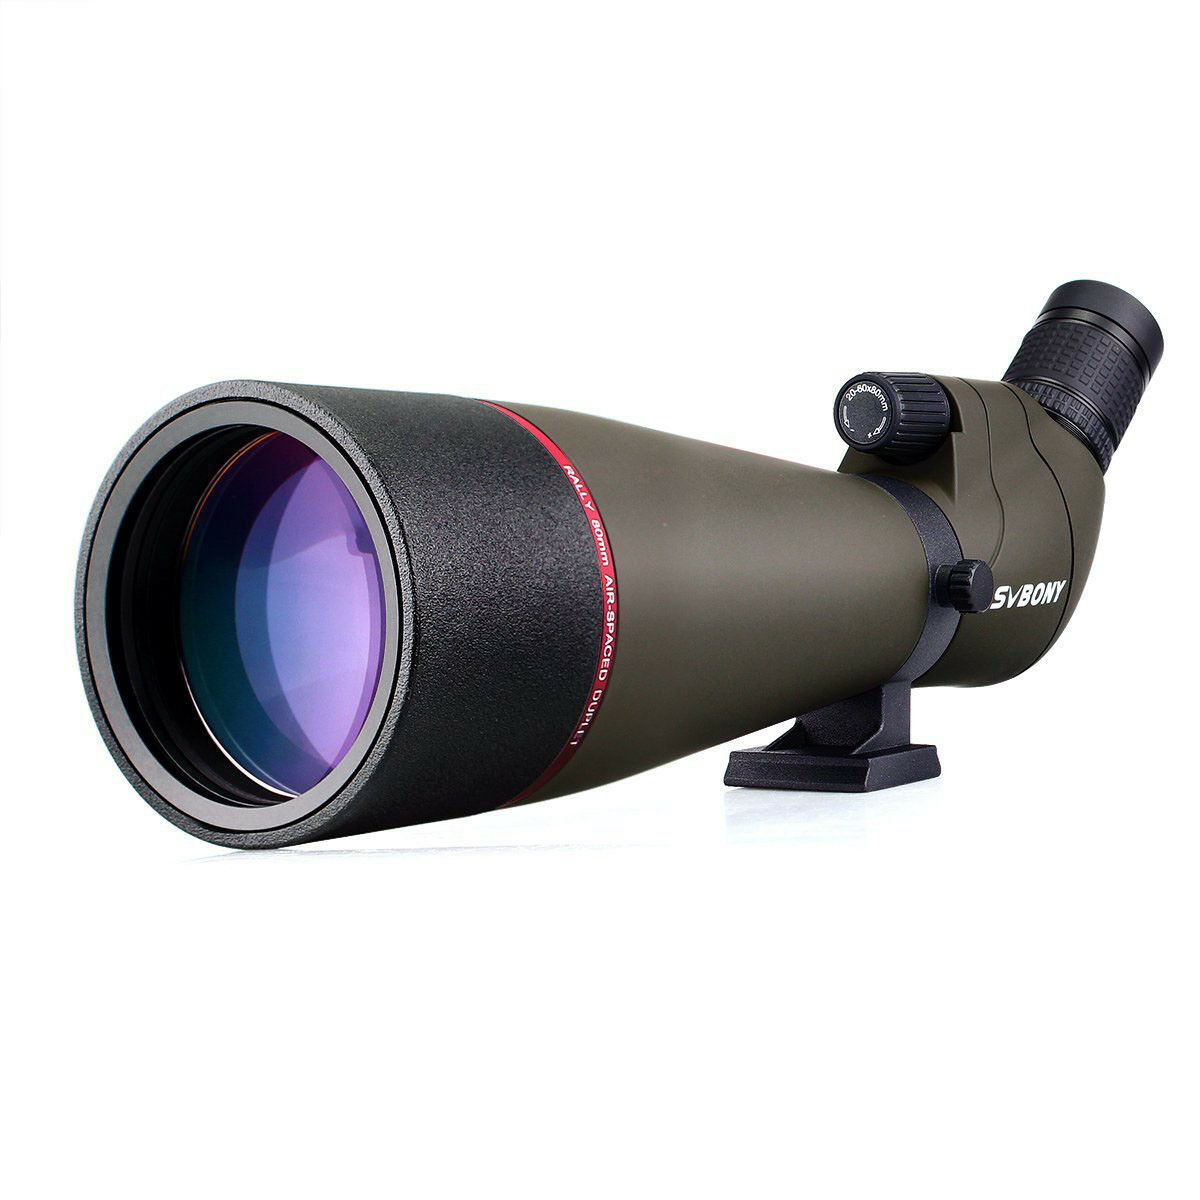 Spotting Scope SVBONY 20-60x80mm Bk7 Zoom Spotting Scope FMC